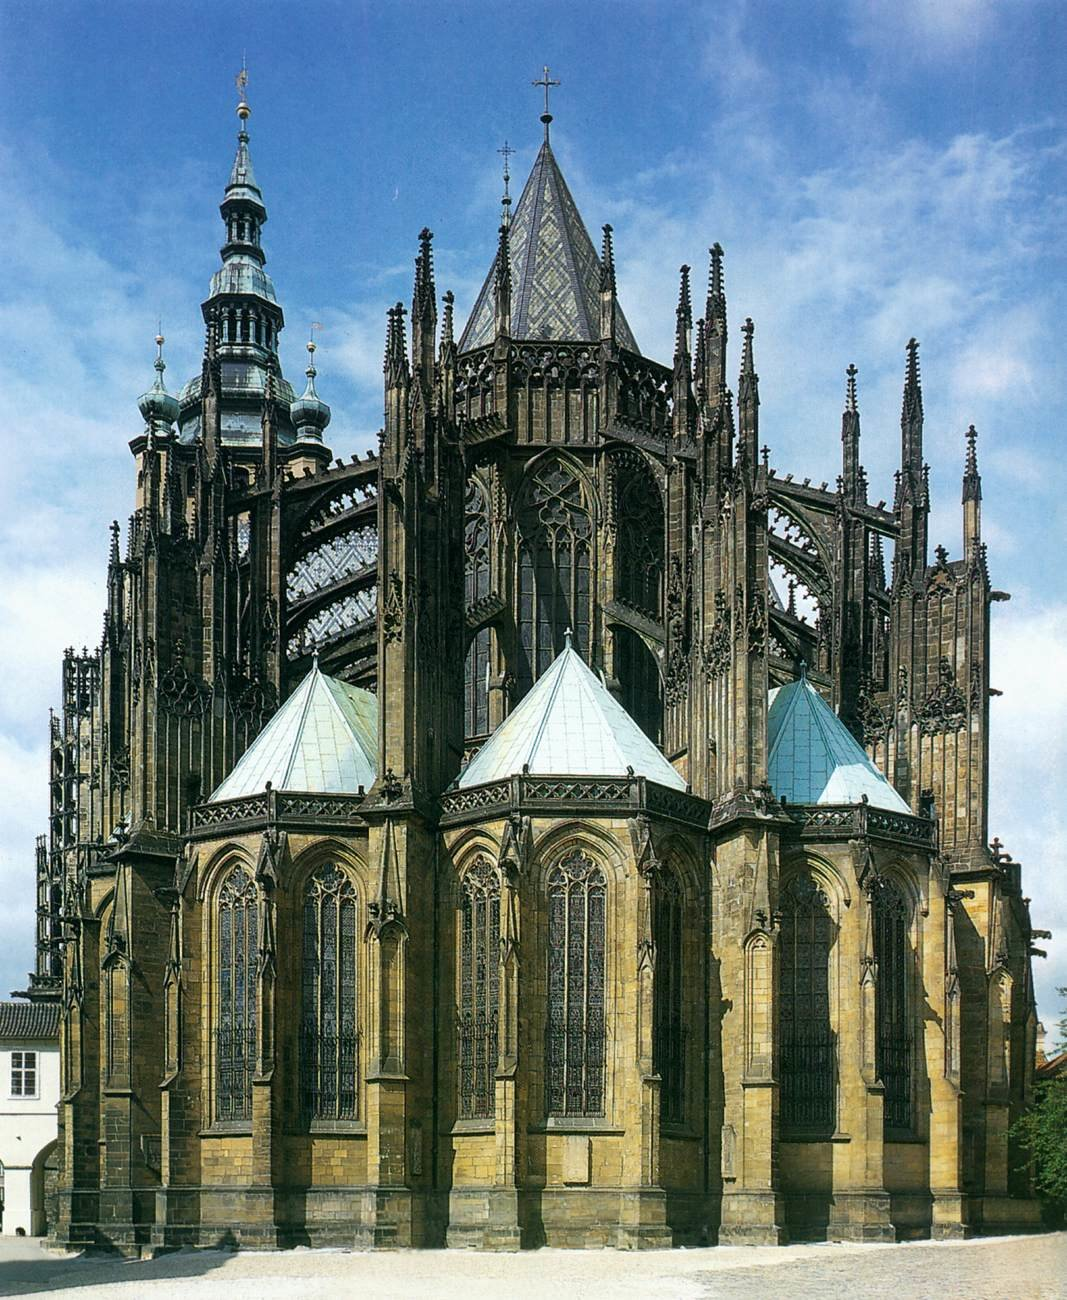 the domination of the gothic style in western europe architecture for over four hundred years